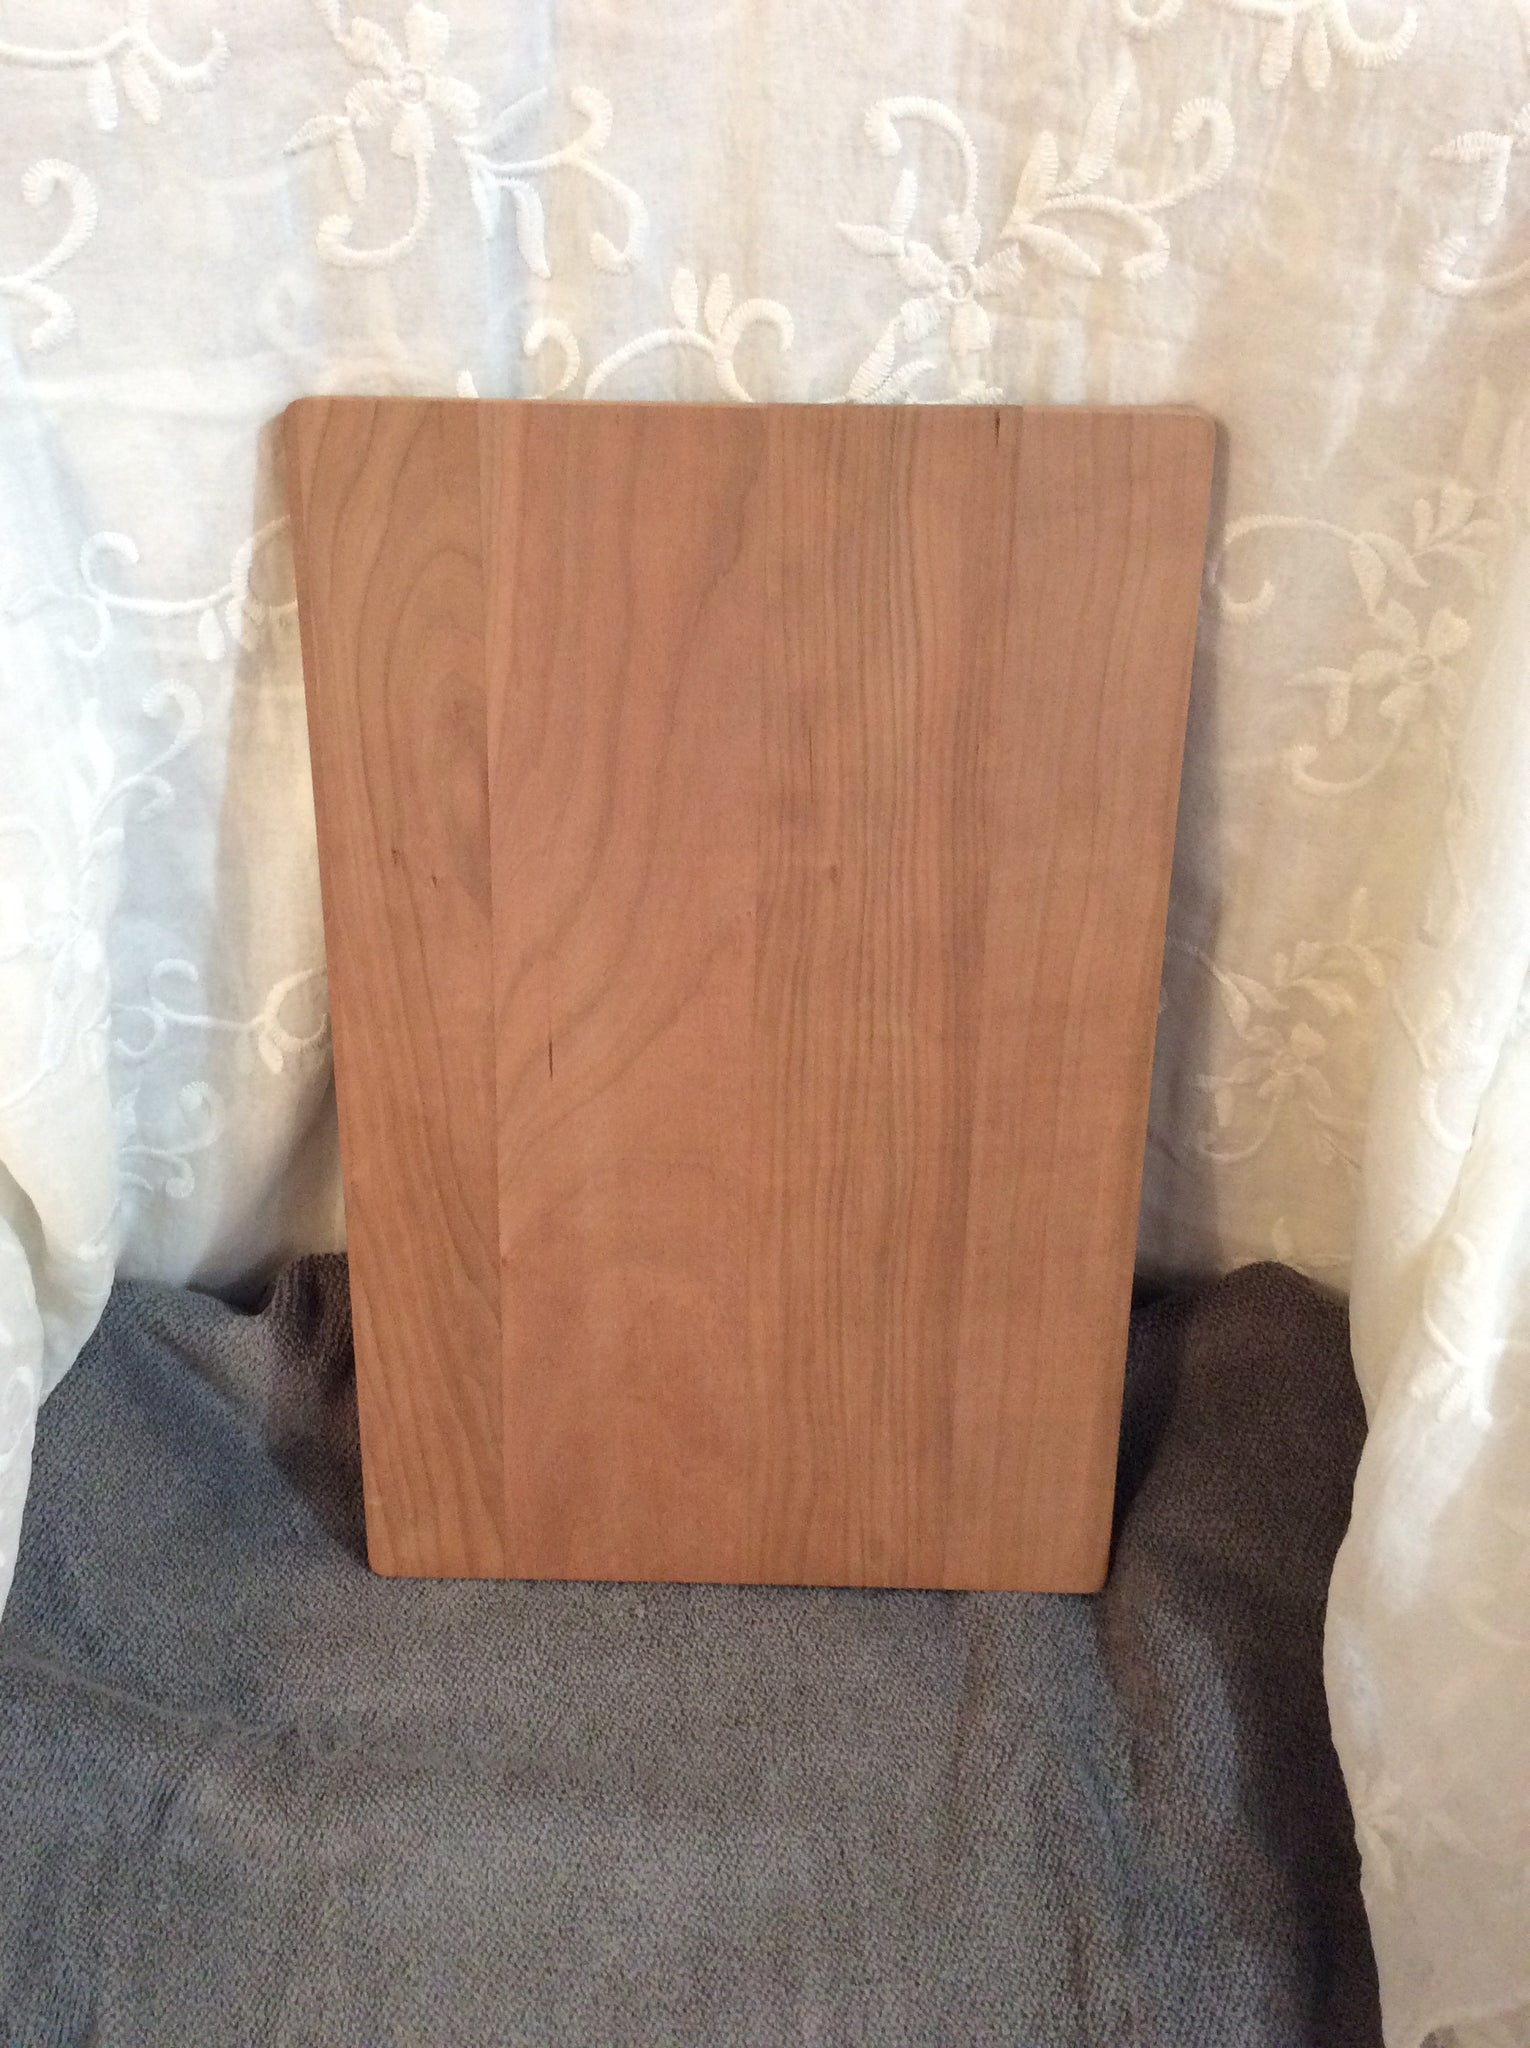 Medium Cutting Board No Handle